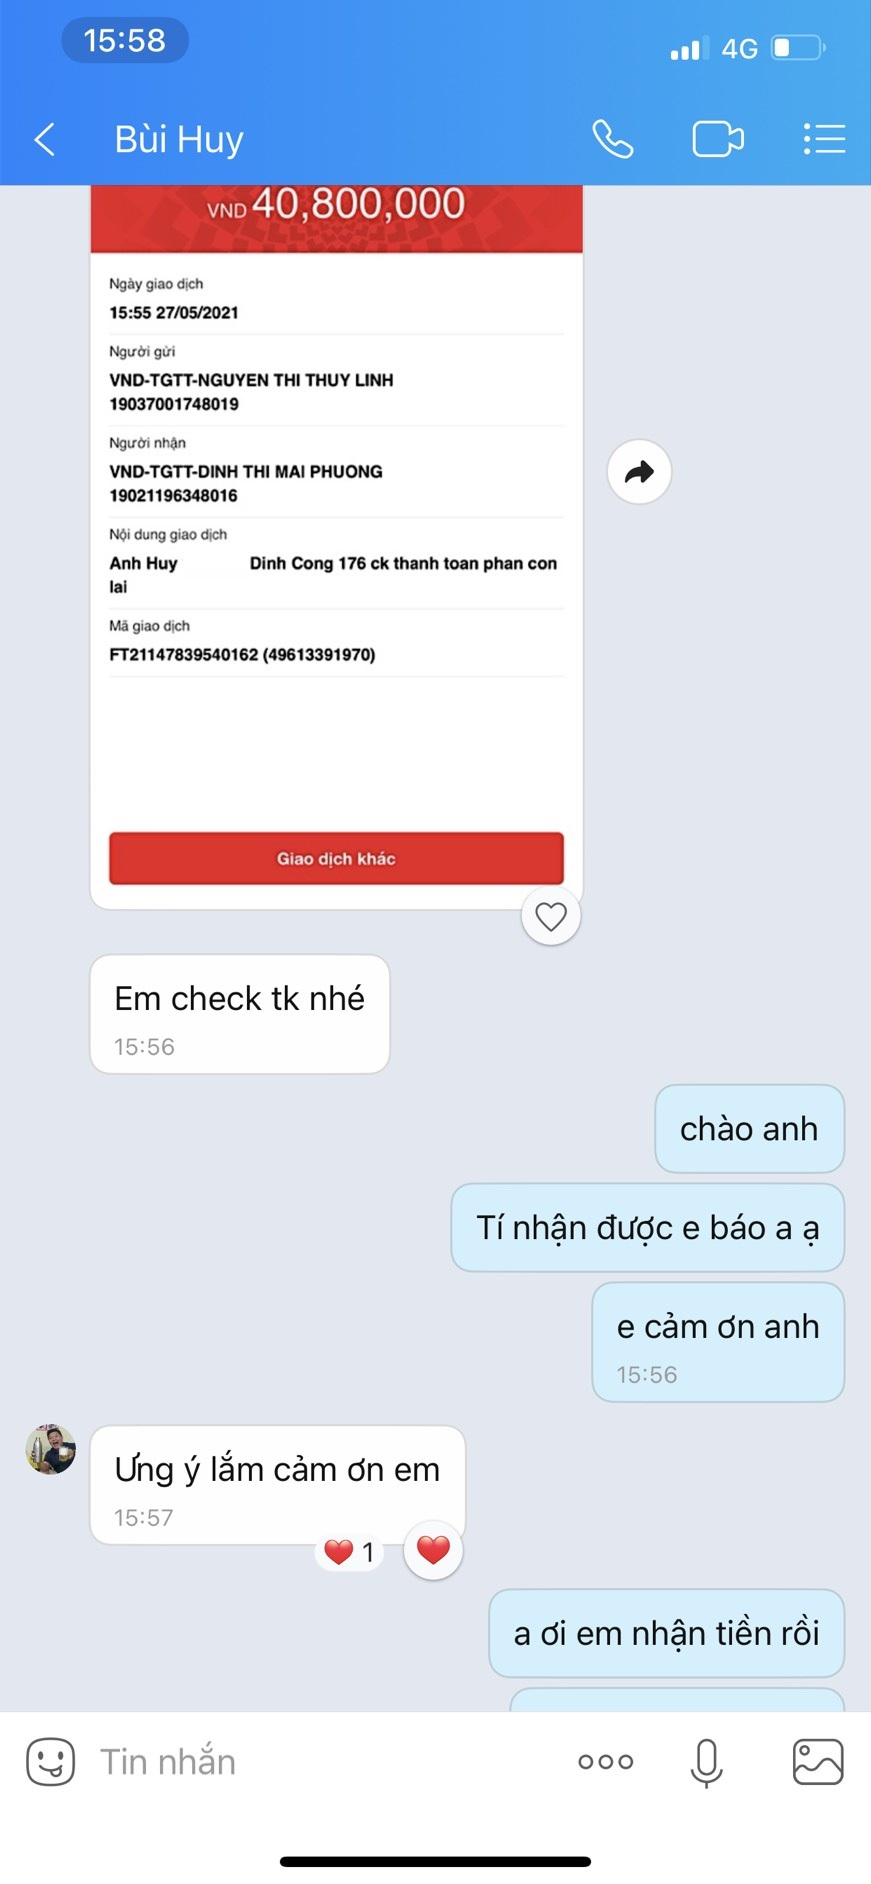 anh huy dinh cong rat ung khi dat full noi that le gia